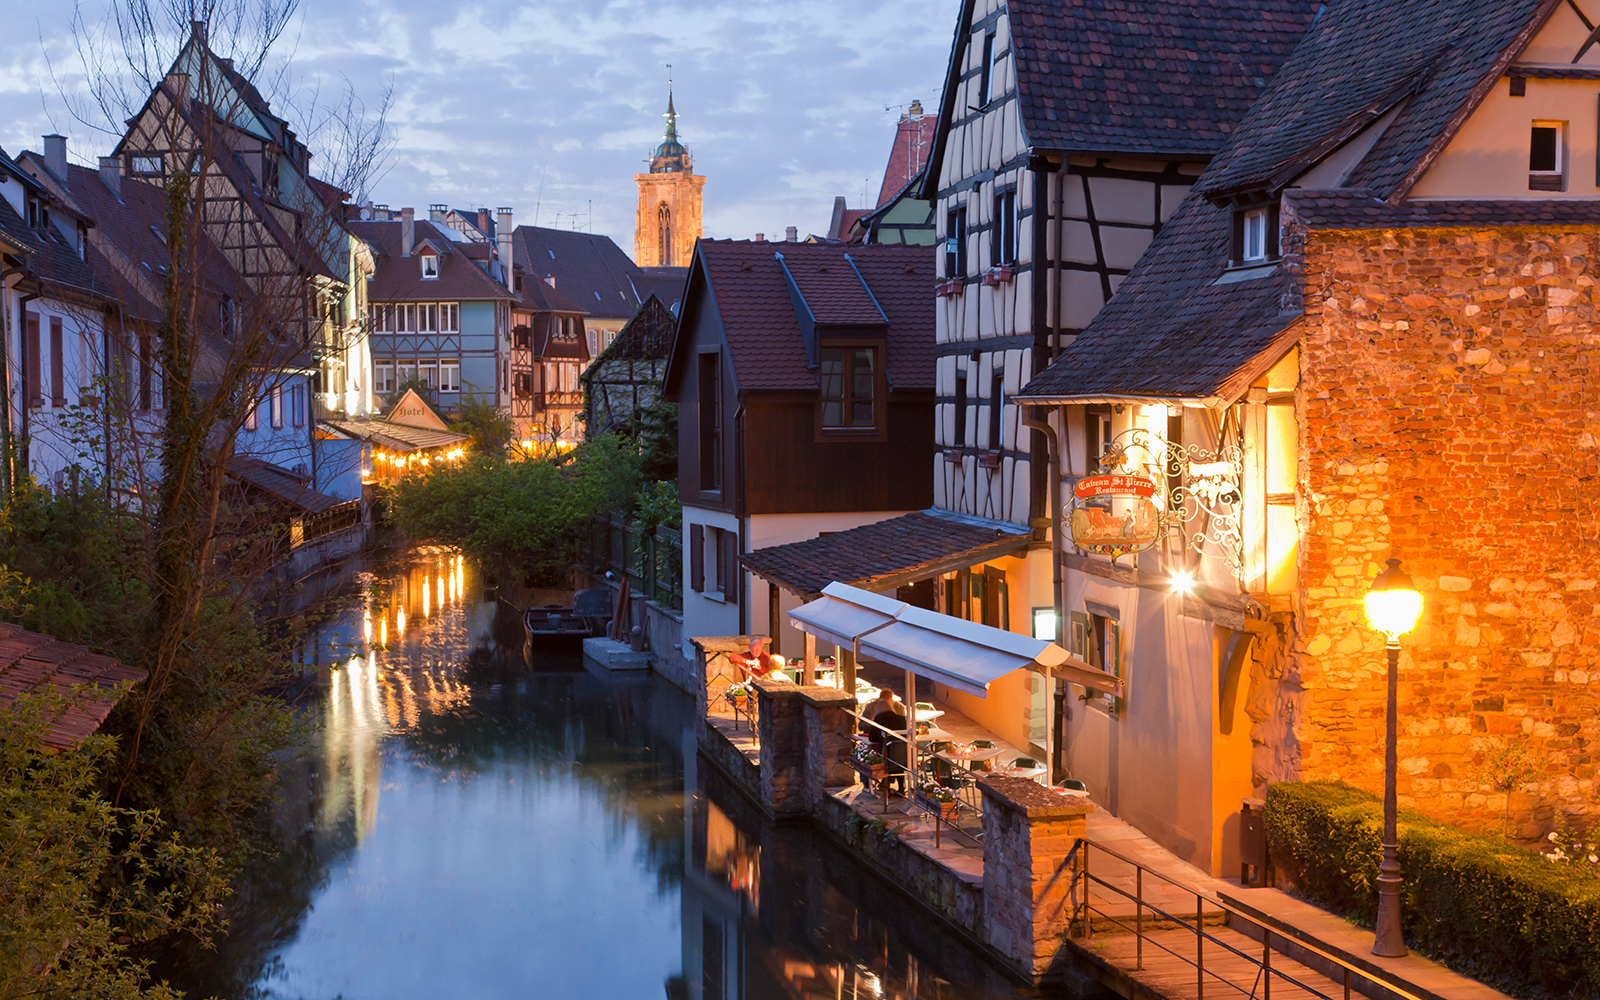 Europe's Most Beautiful Villages: Colmar, France